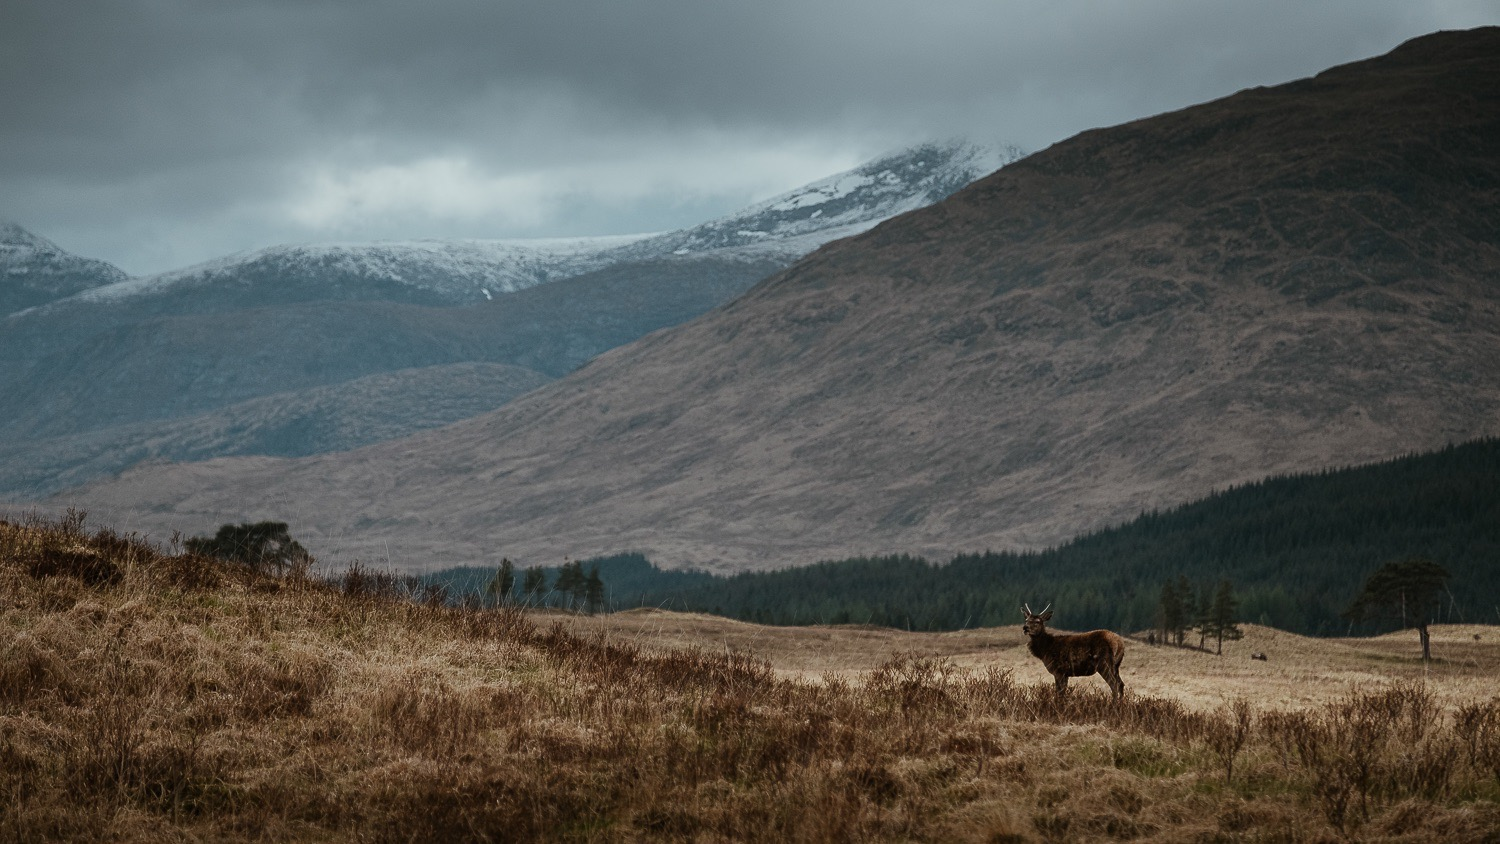 0010-scotland-tamron-le monde de la photo-paysage-20190507165357-compress.jpg